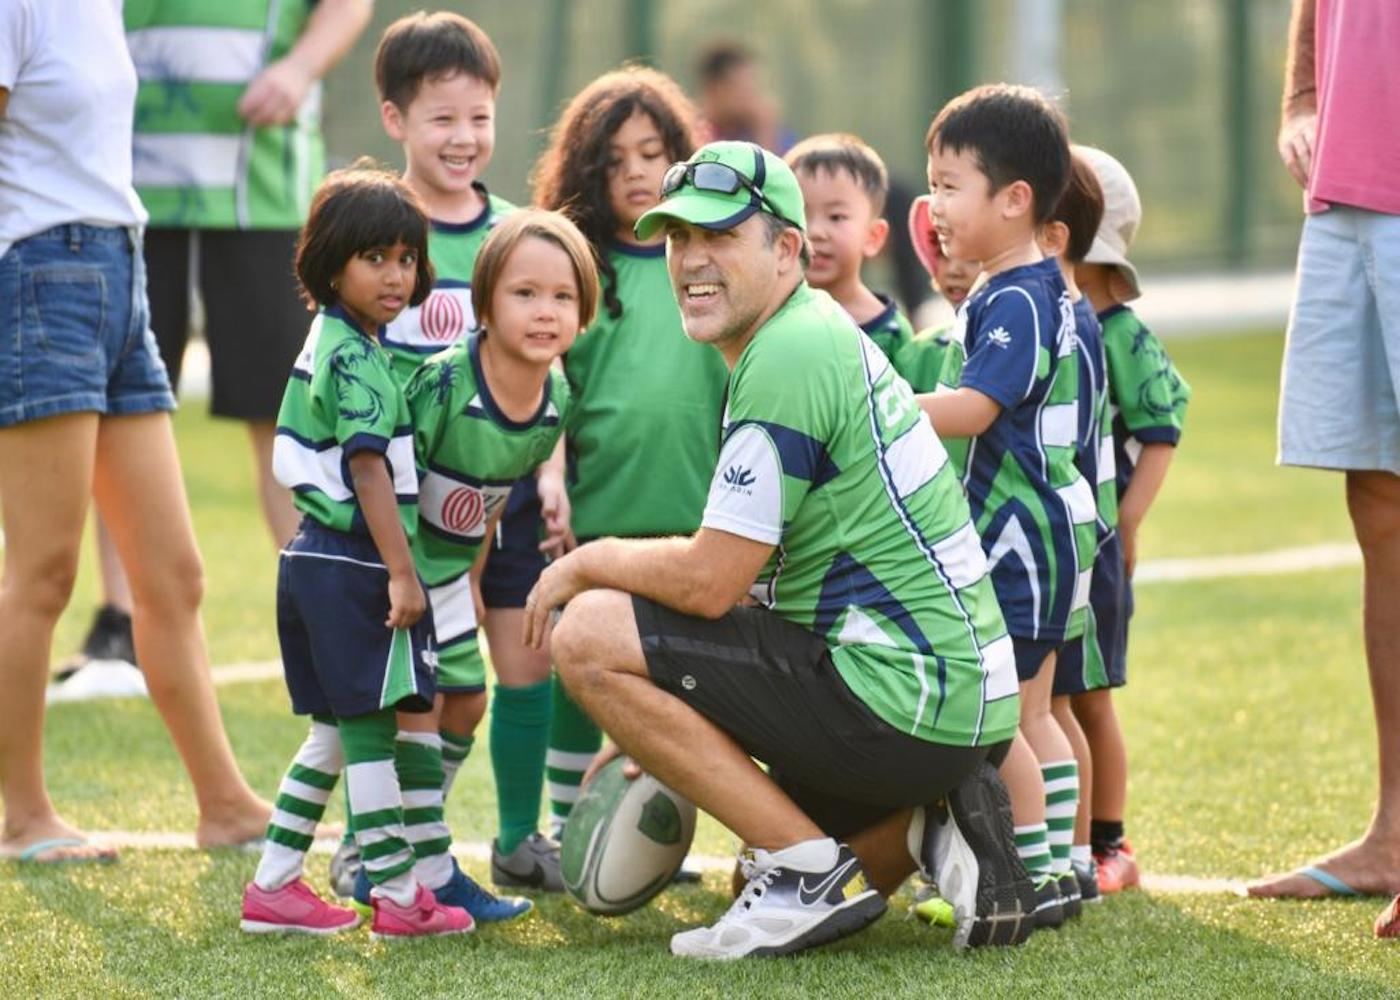 rugby classes for kids in singapore scc rugby club